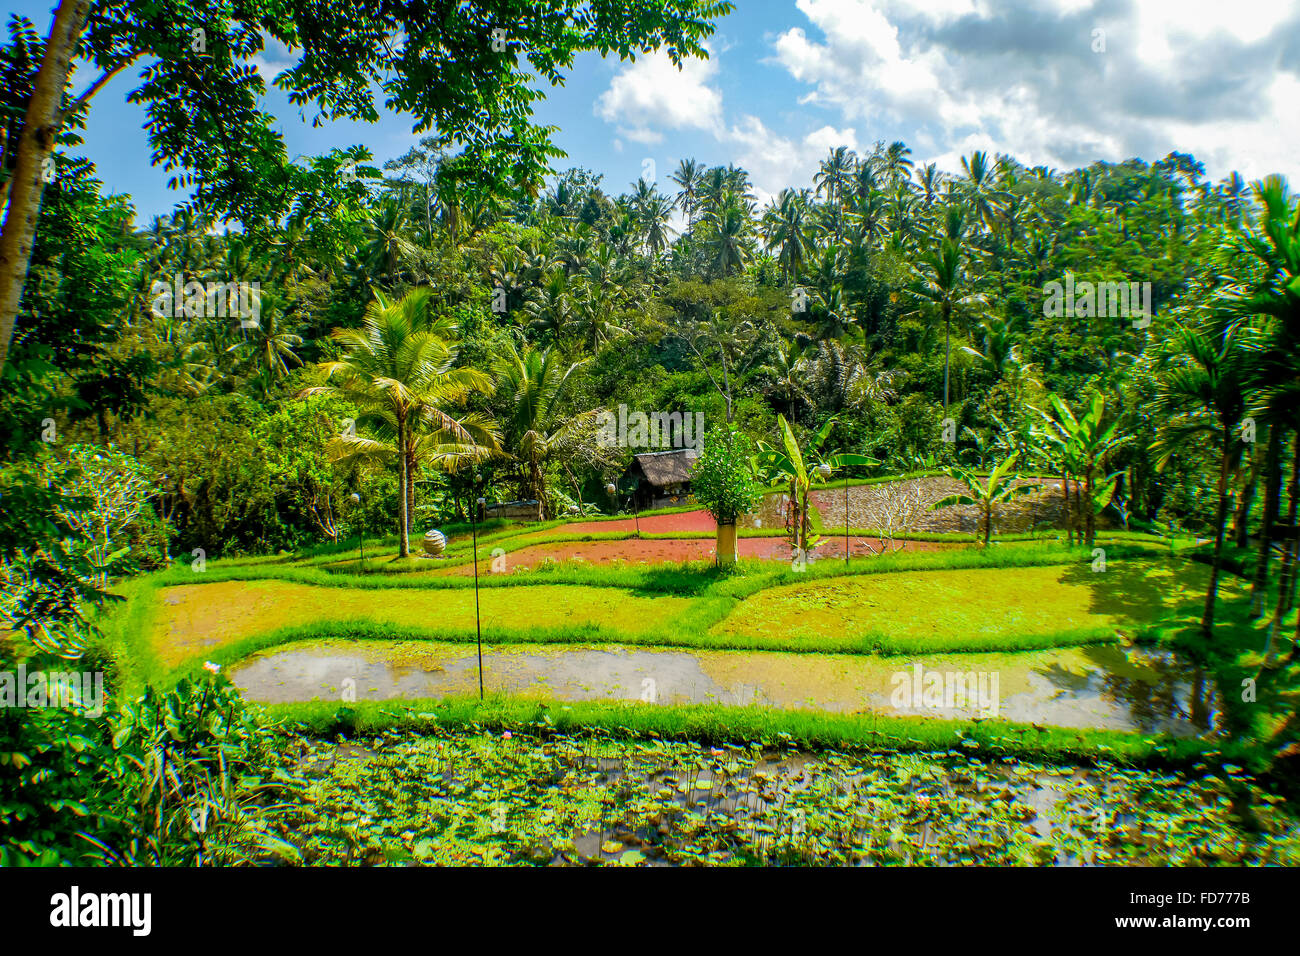 Rice terraces with palm trees, agriculture, landscape, Ubud, Bali, Indonesia, Asia - Stock Image